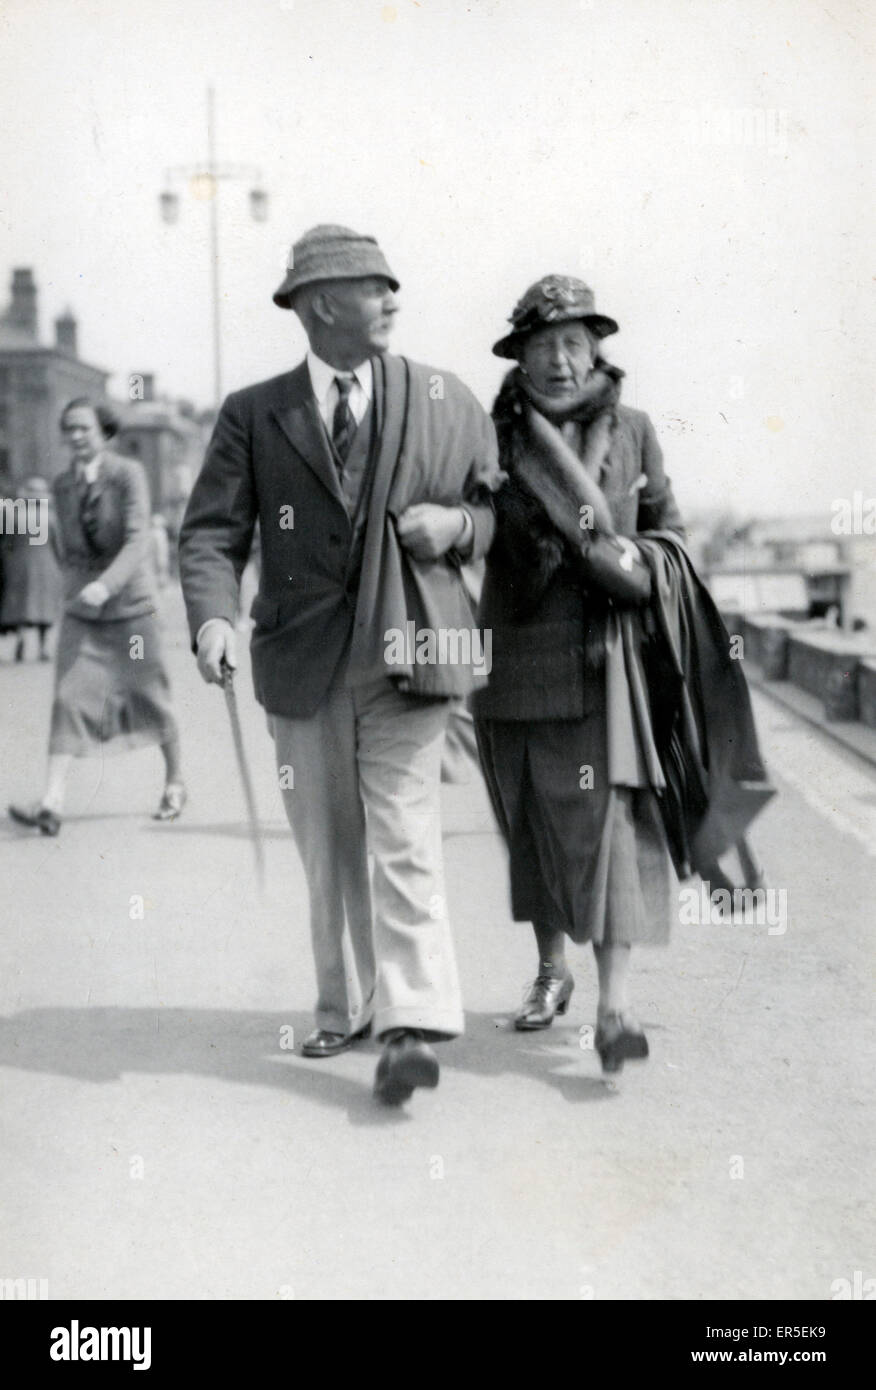 Holidaymaker Couple, Lowestoft, Suffolk, England.  1930s - Stock Image